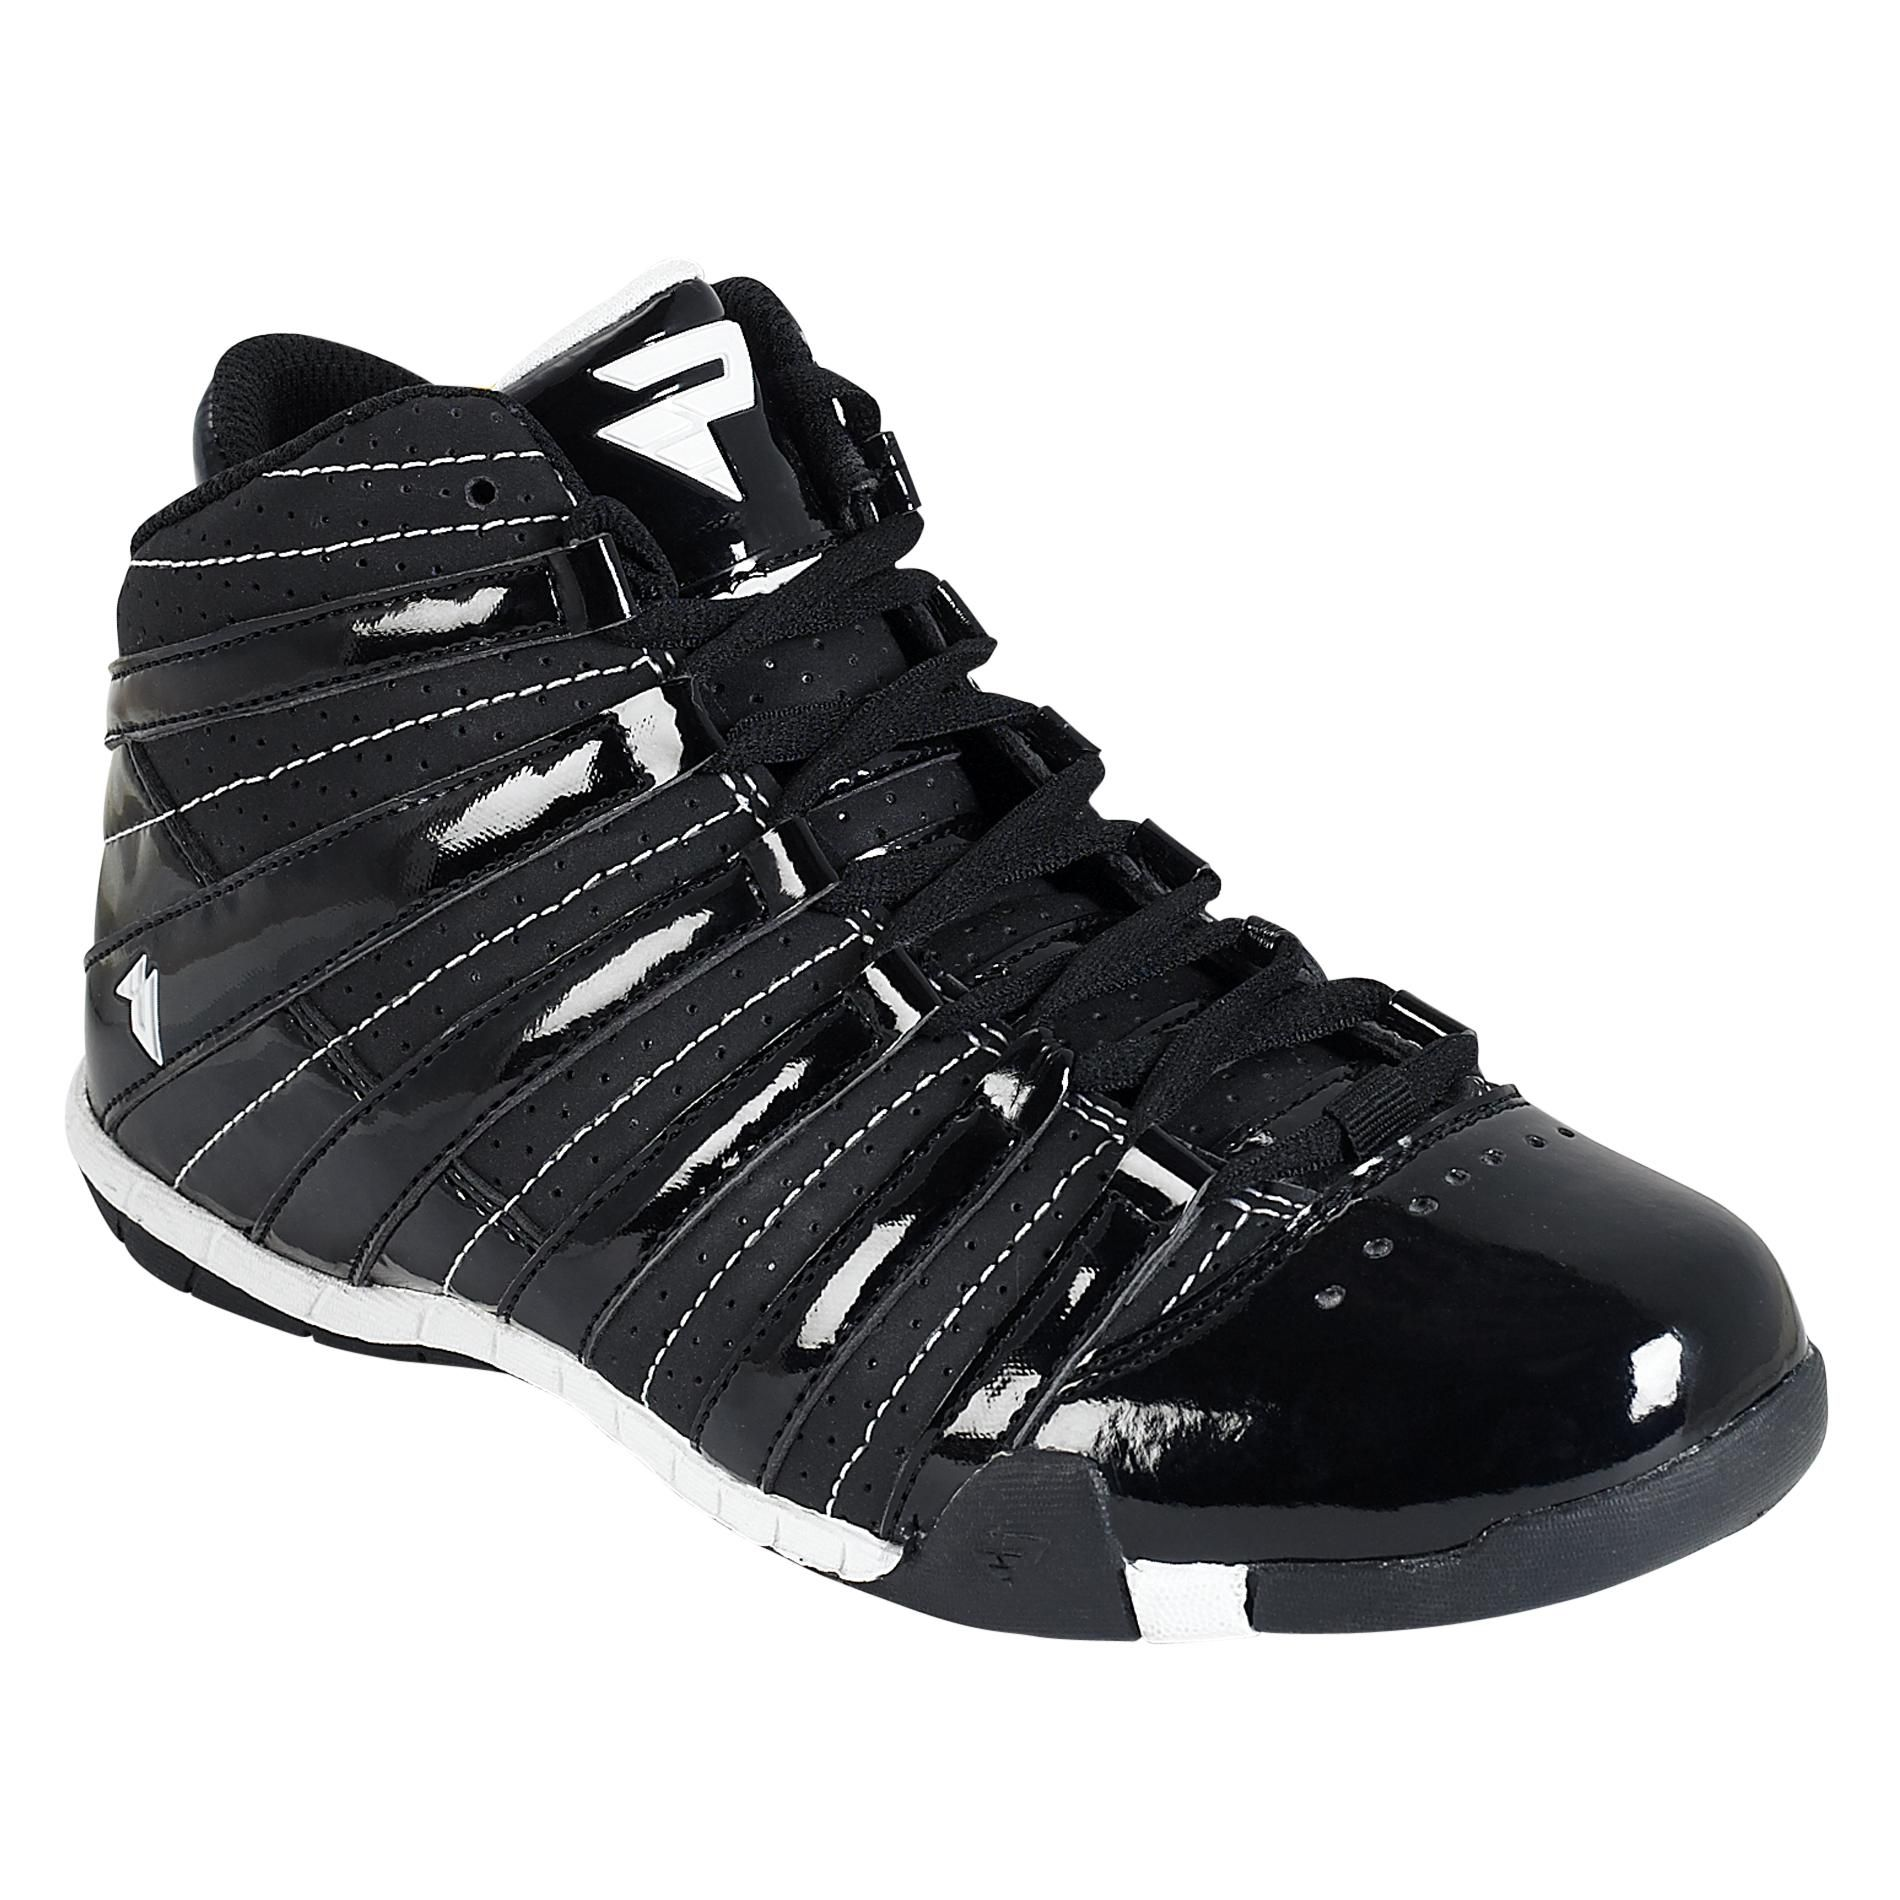 Boy's Five Basketball Shoe - Black